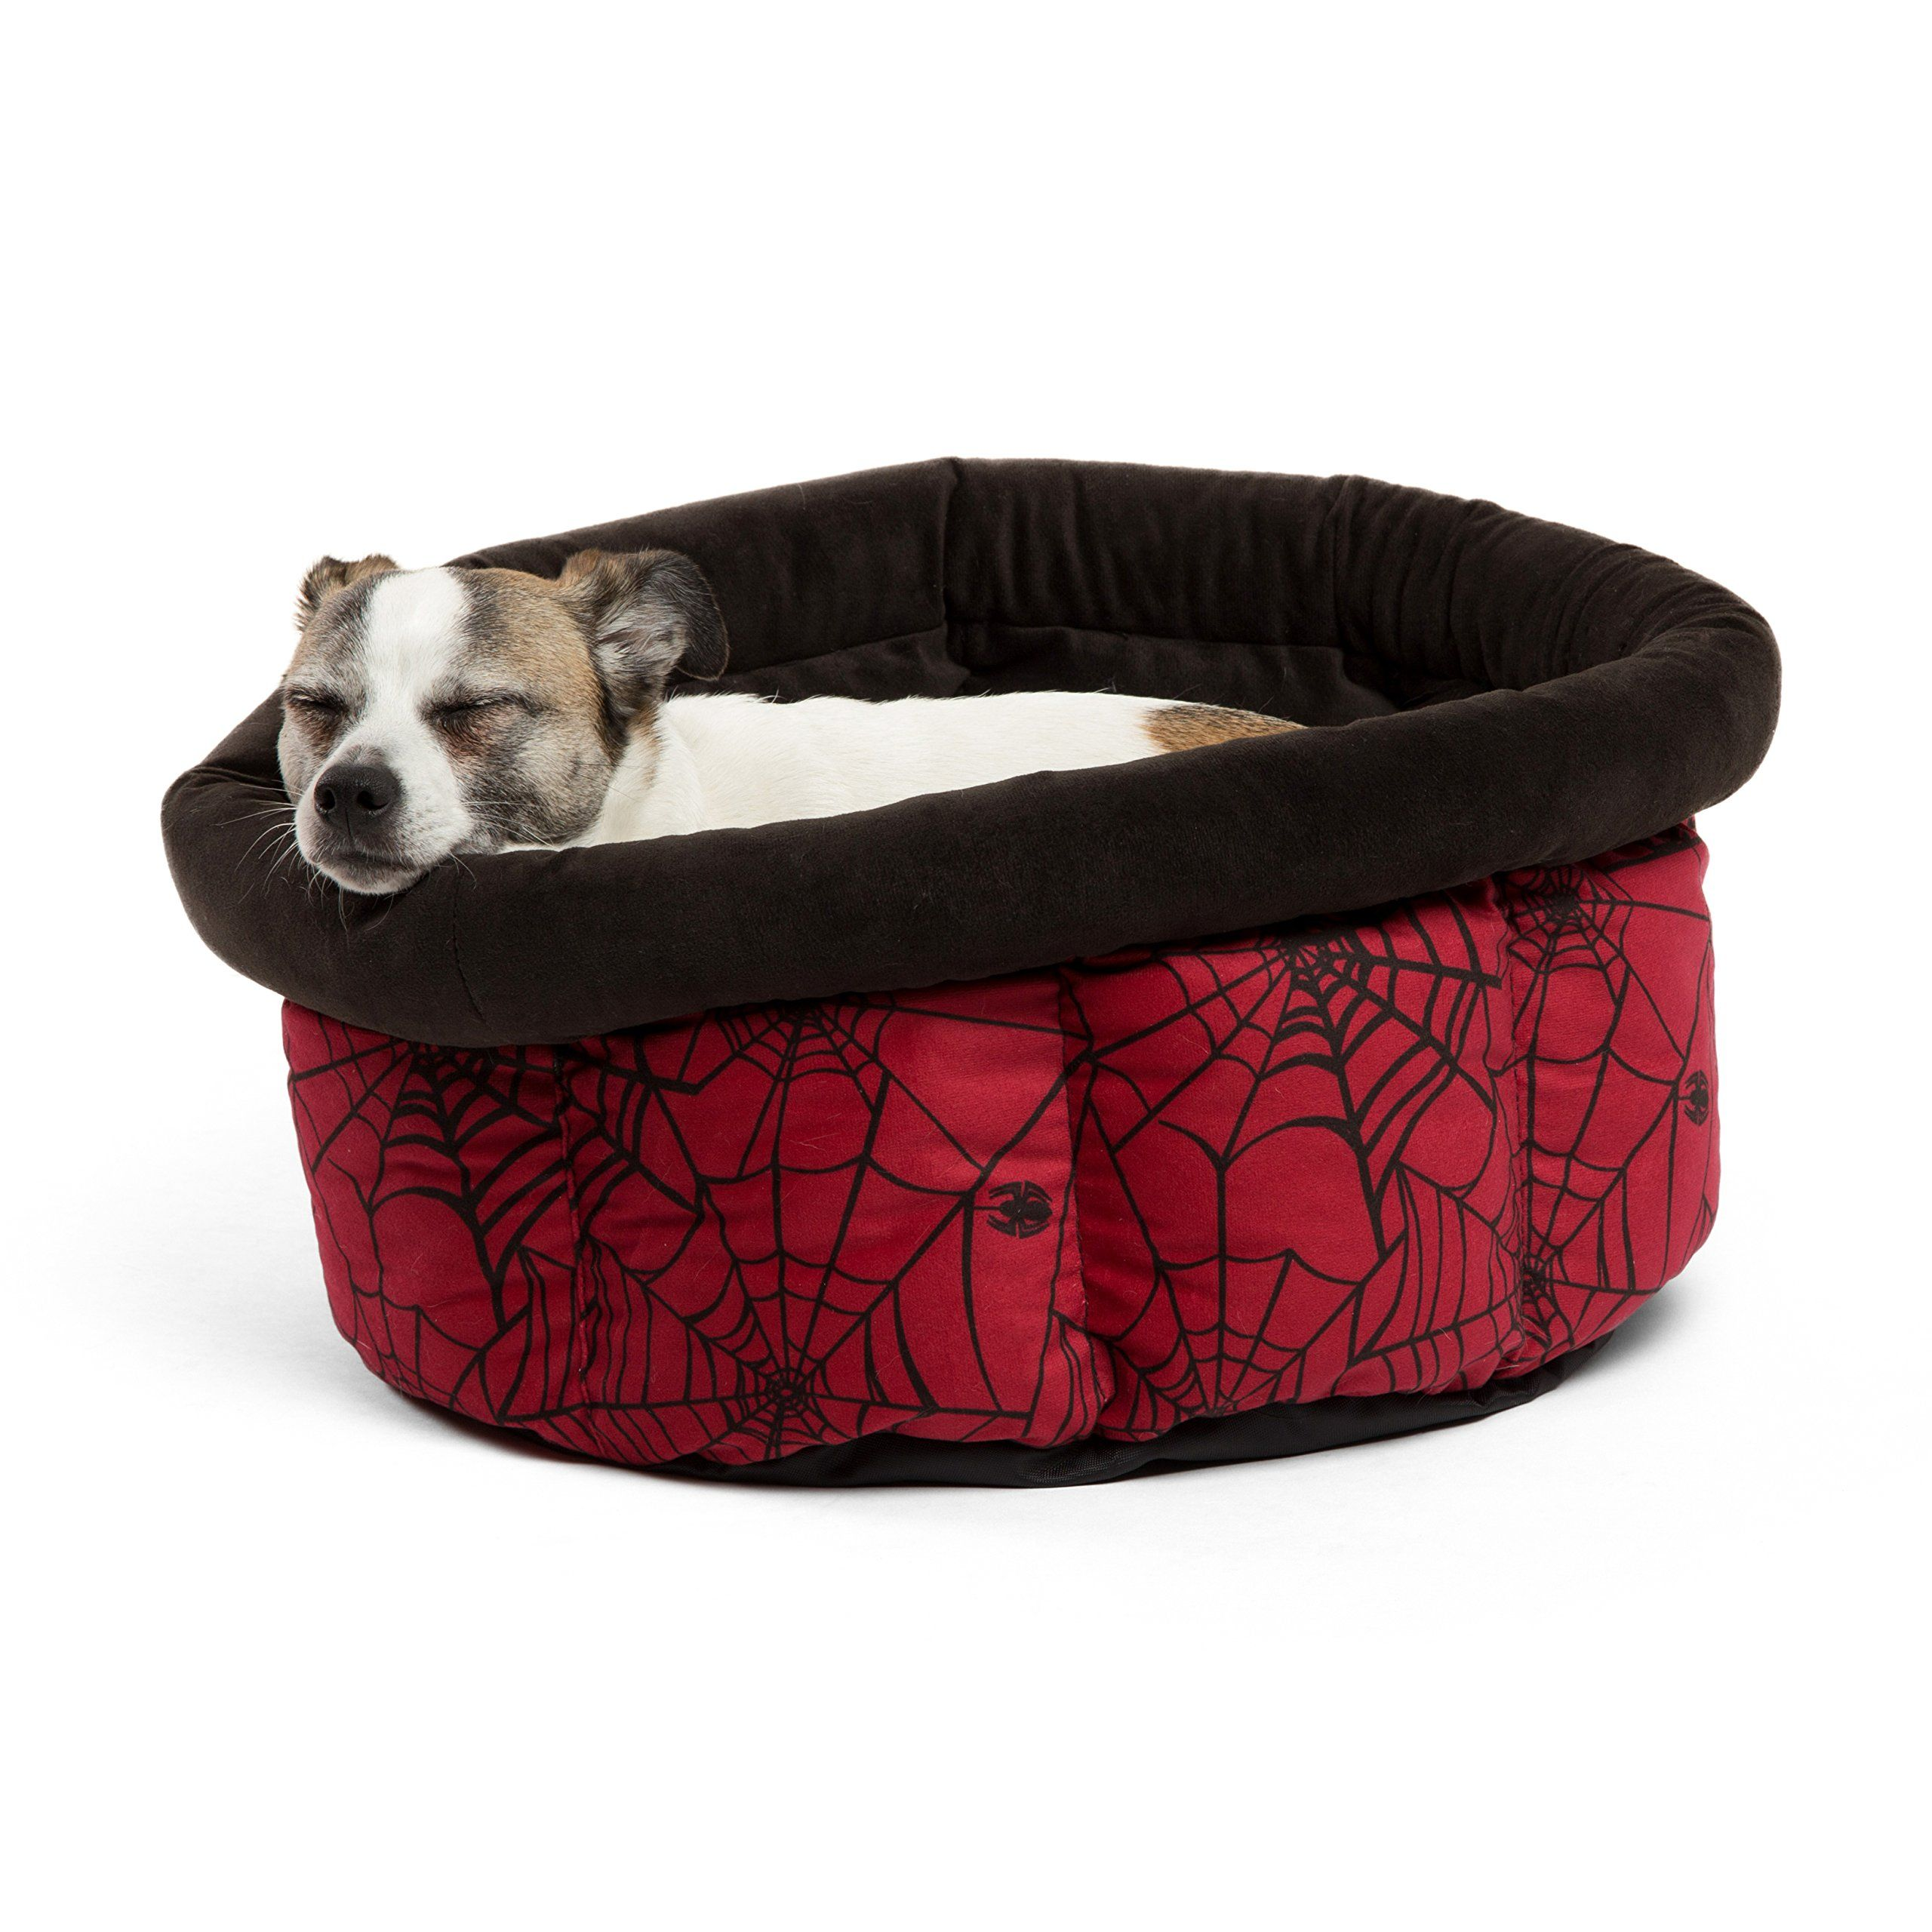 Marvel Cuddle Cup In Spiderman Spidey Web Dog Bed Cat Bed Have A Look At This Excellent Item This Is An Affiliate Link Dogbeds Cat Bed Dog Bed Dog Cat